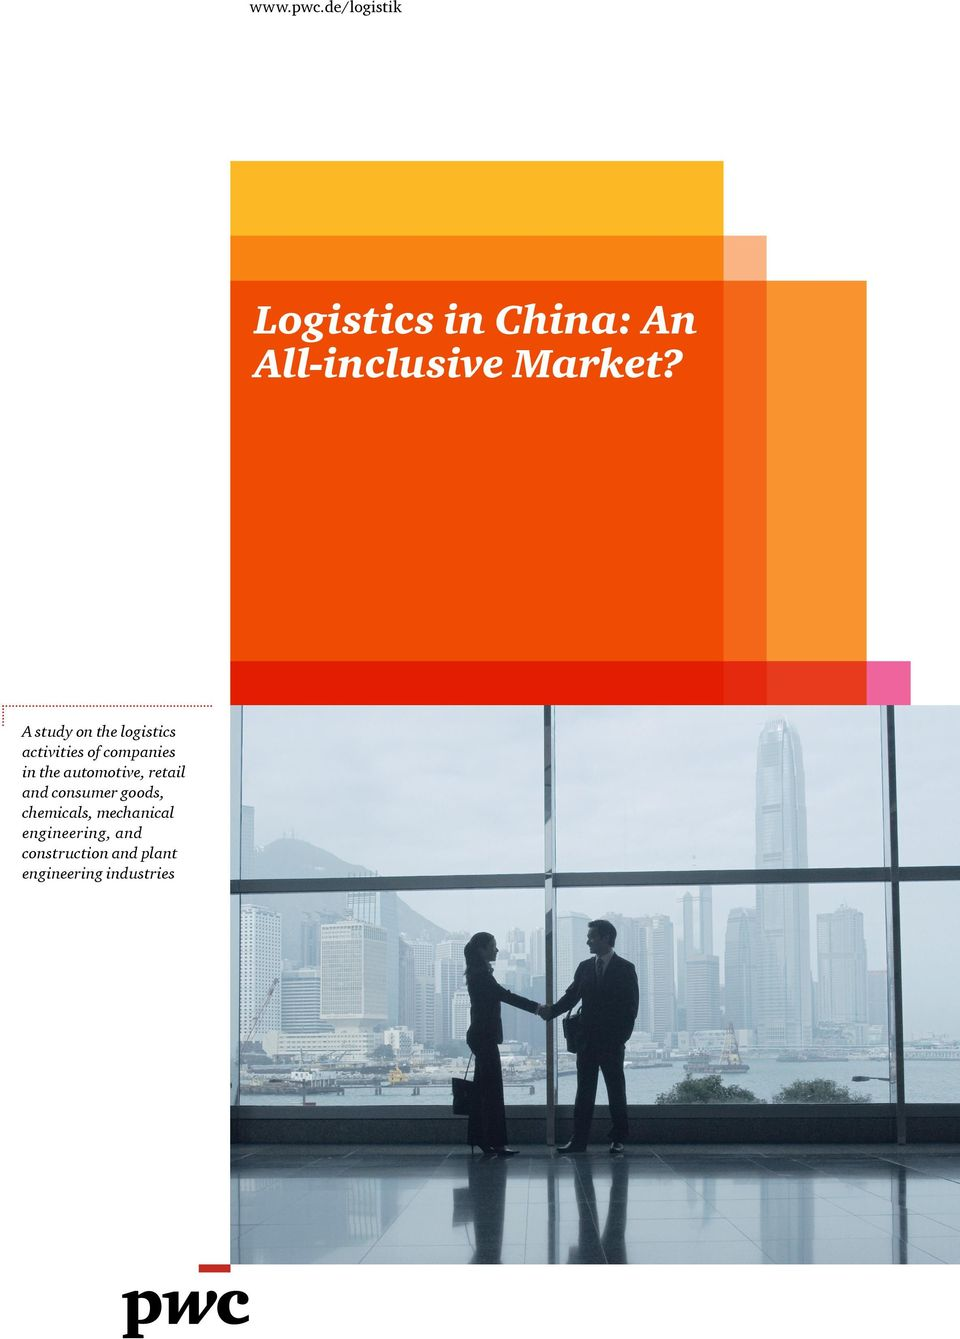 A study on the logistics activities of companies in the